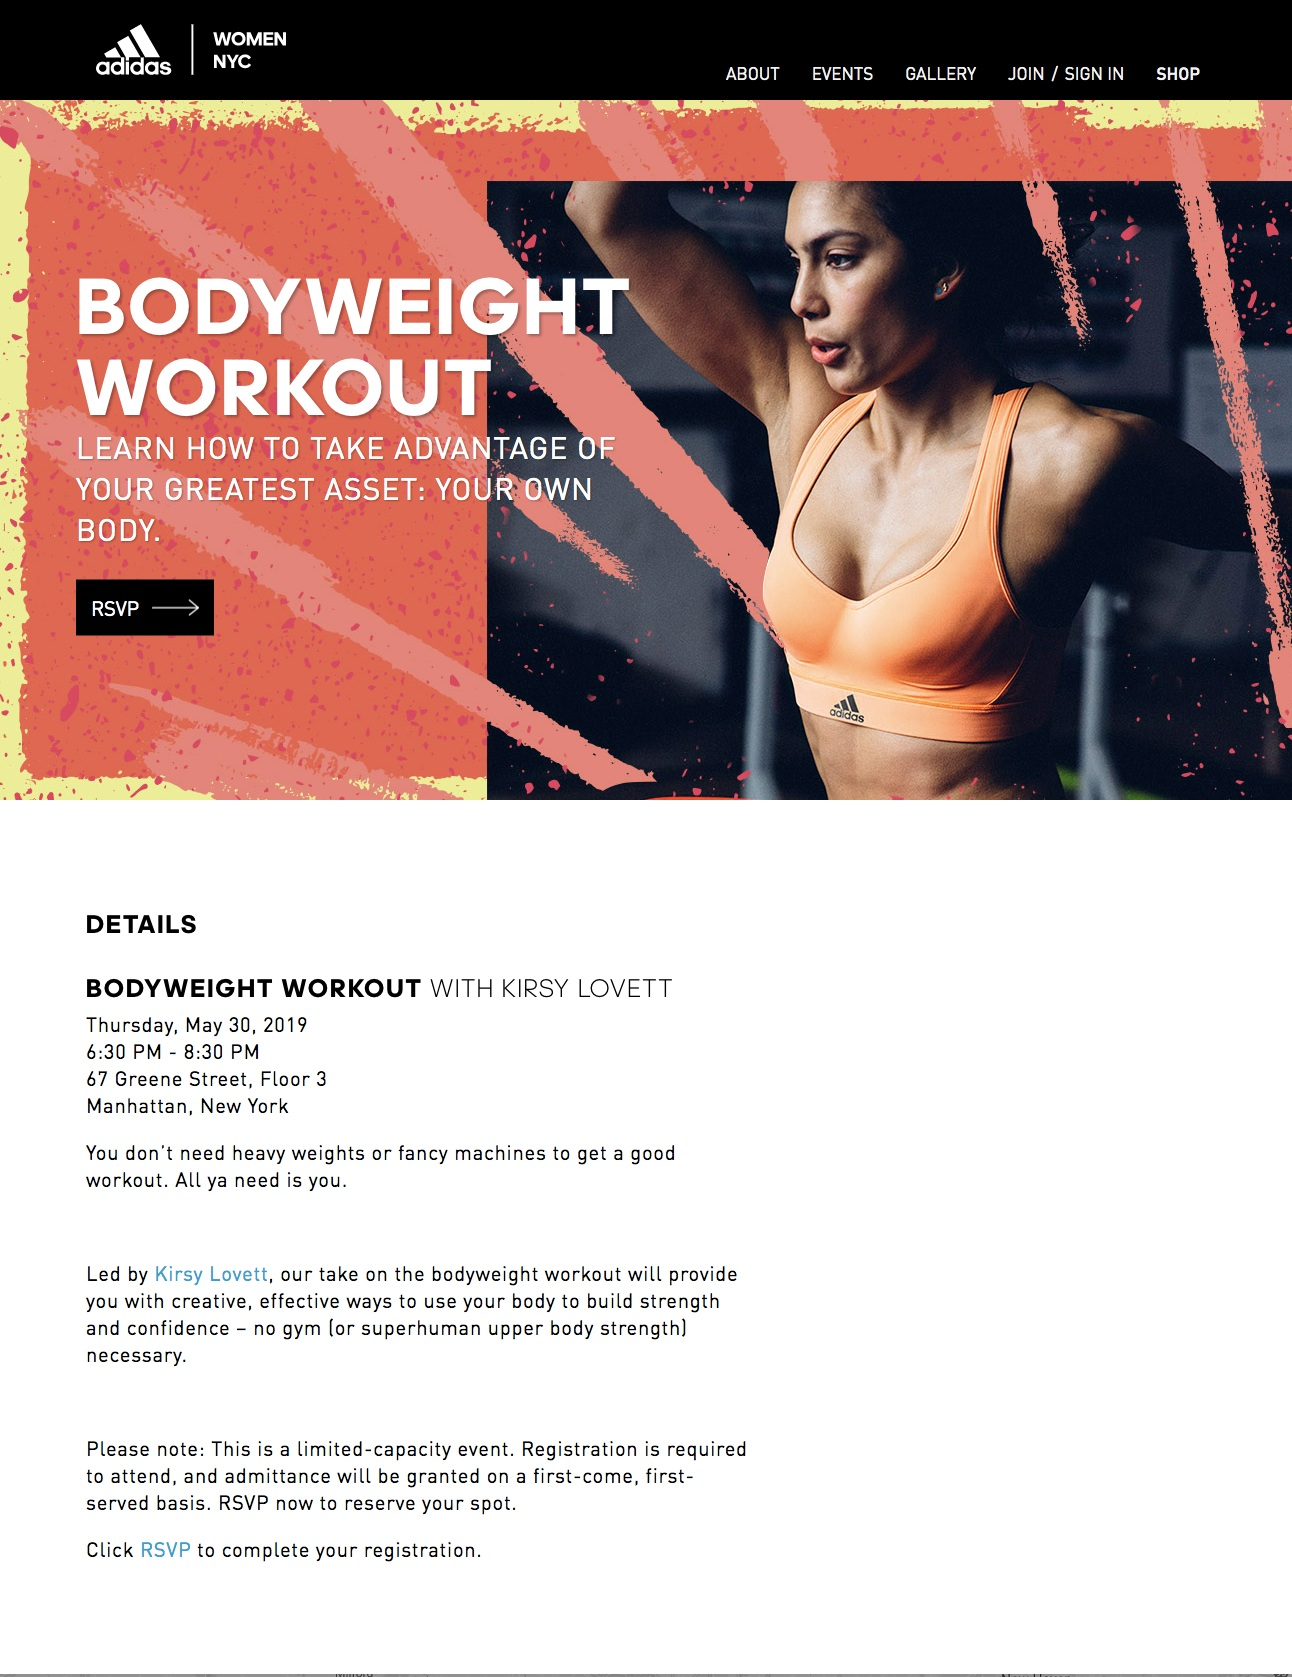 screencapture-adidaswomennyc-event-may-bodyweight-2019-05-22-15_22_48.png